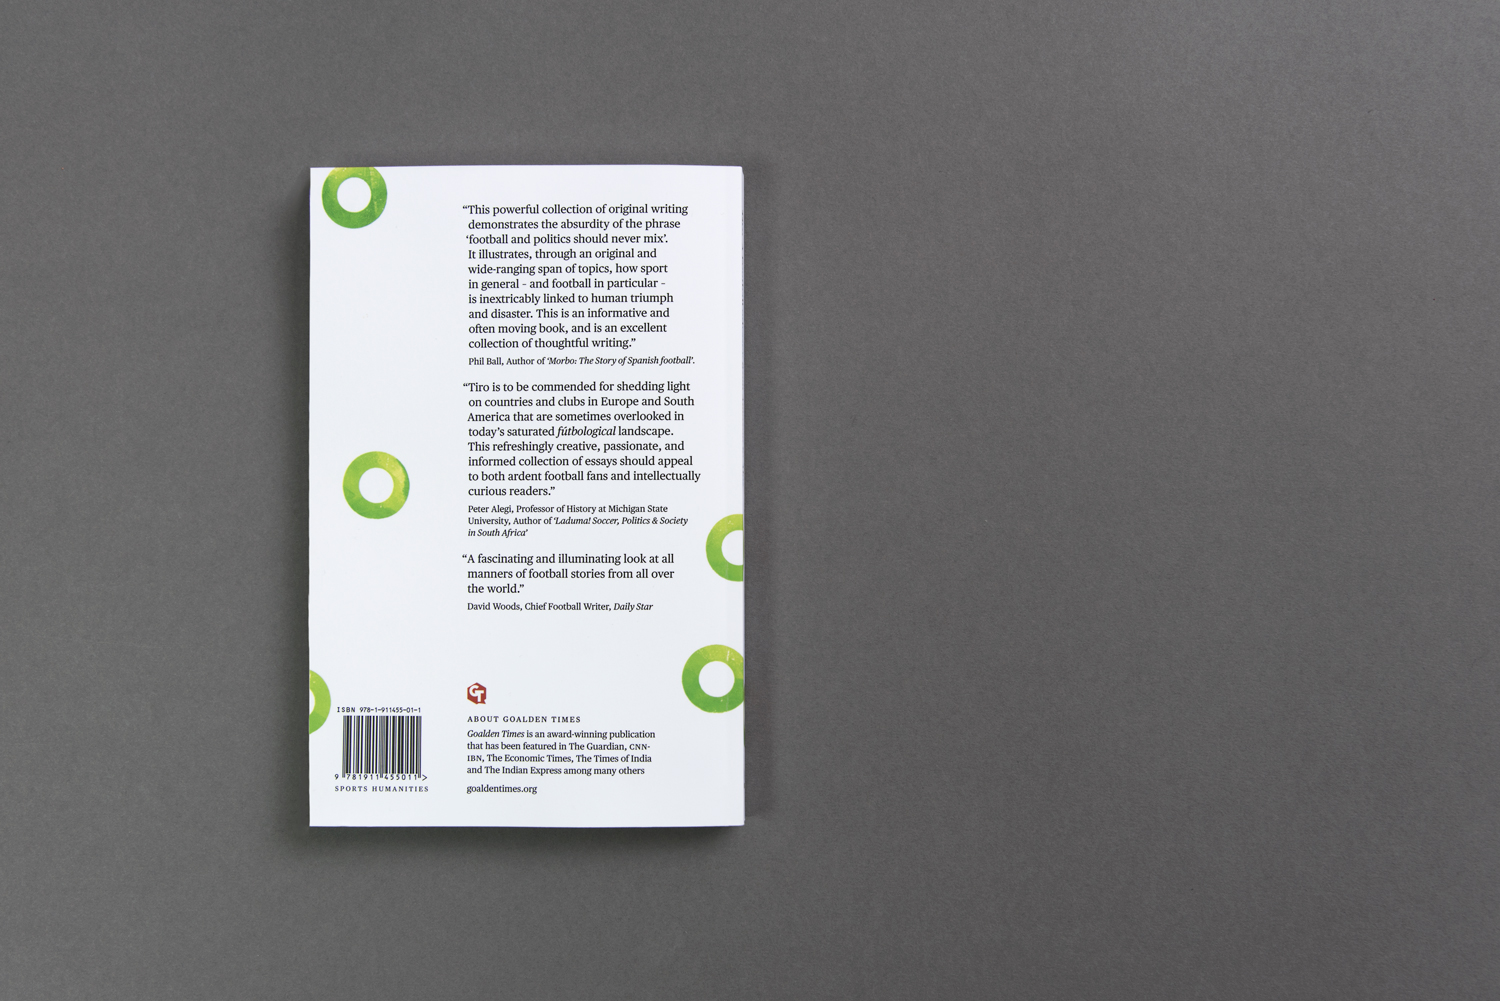 Print by London-based design studio, private press and typography workshop The Counter Press for Tiro, released by UK independent publisher Rattis Books.